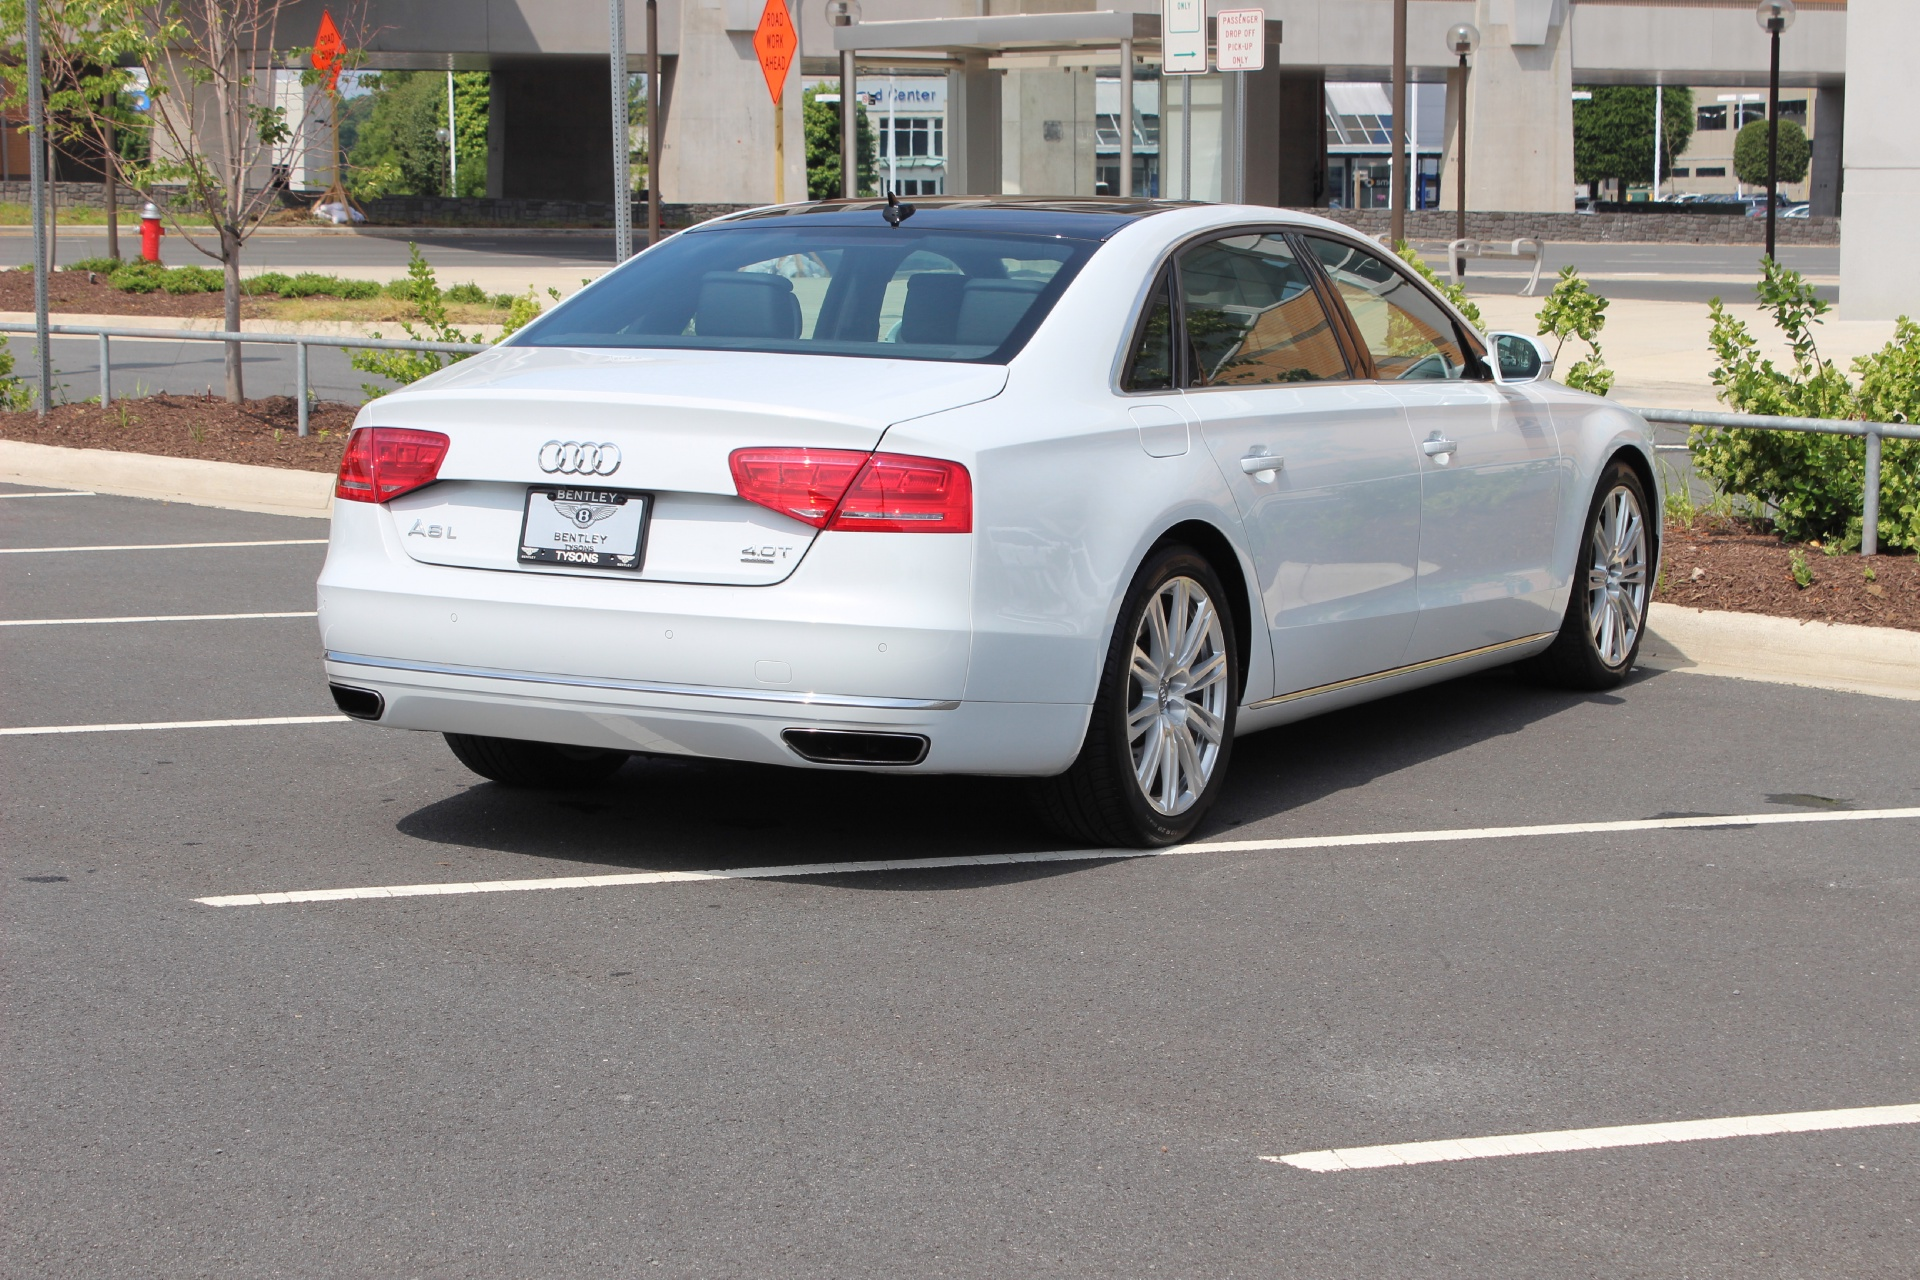 2013 audi a8 l 4 0t quattro stock 6ncg8051361b for sale near vienna va va audi dealer for. Black Bedroom Furniture Sets. Home Design Ideas